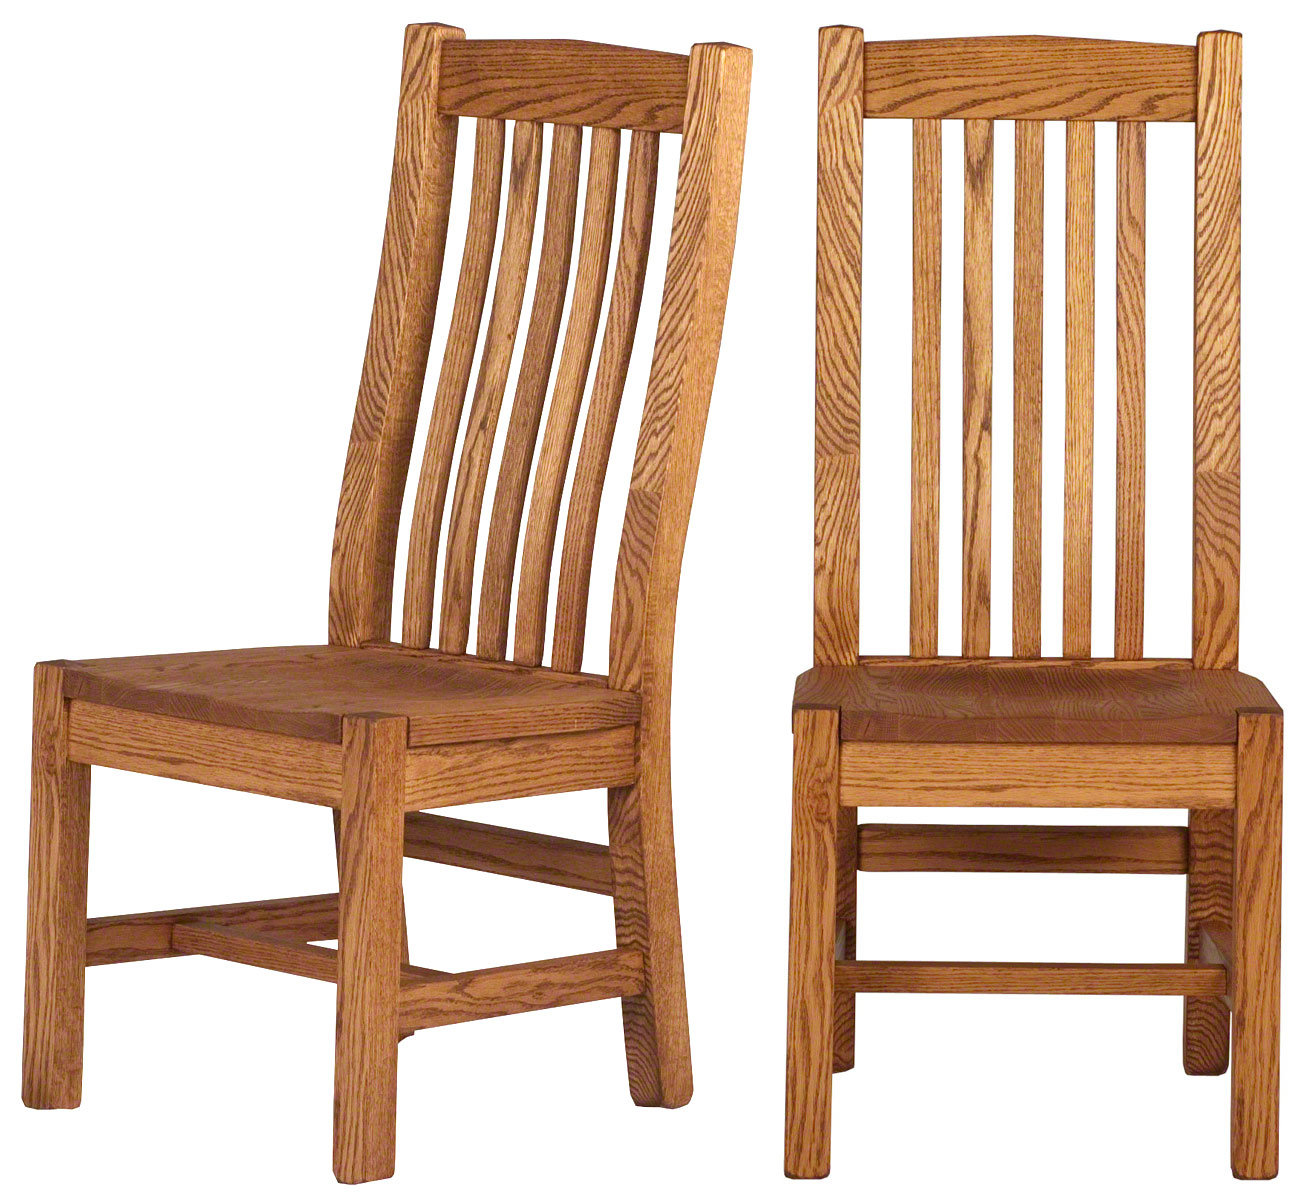 Dining Room Sets Phoenix: Dining Room Chair In The Phoenix Style